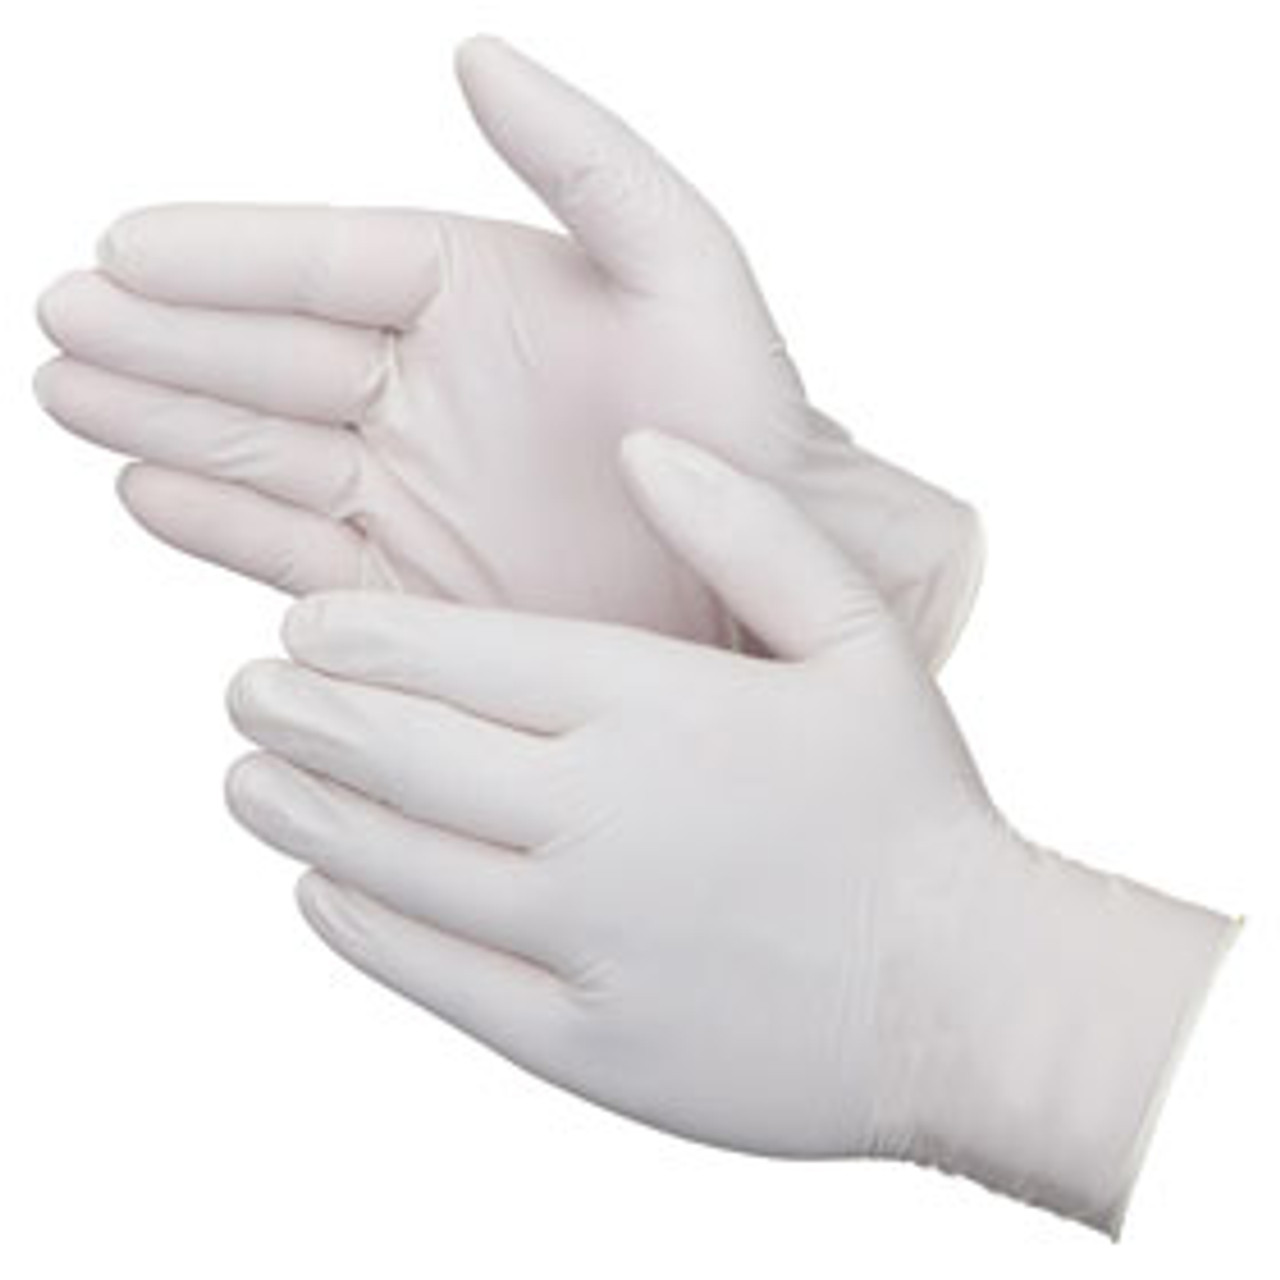 Latex Gloves Industrial-Grade